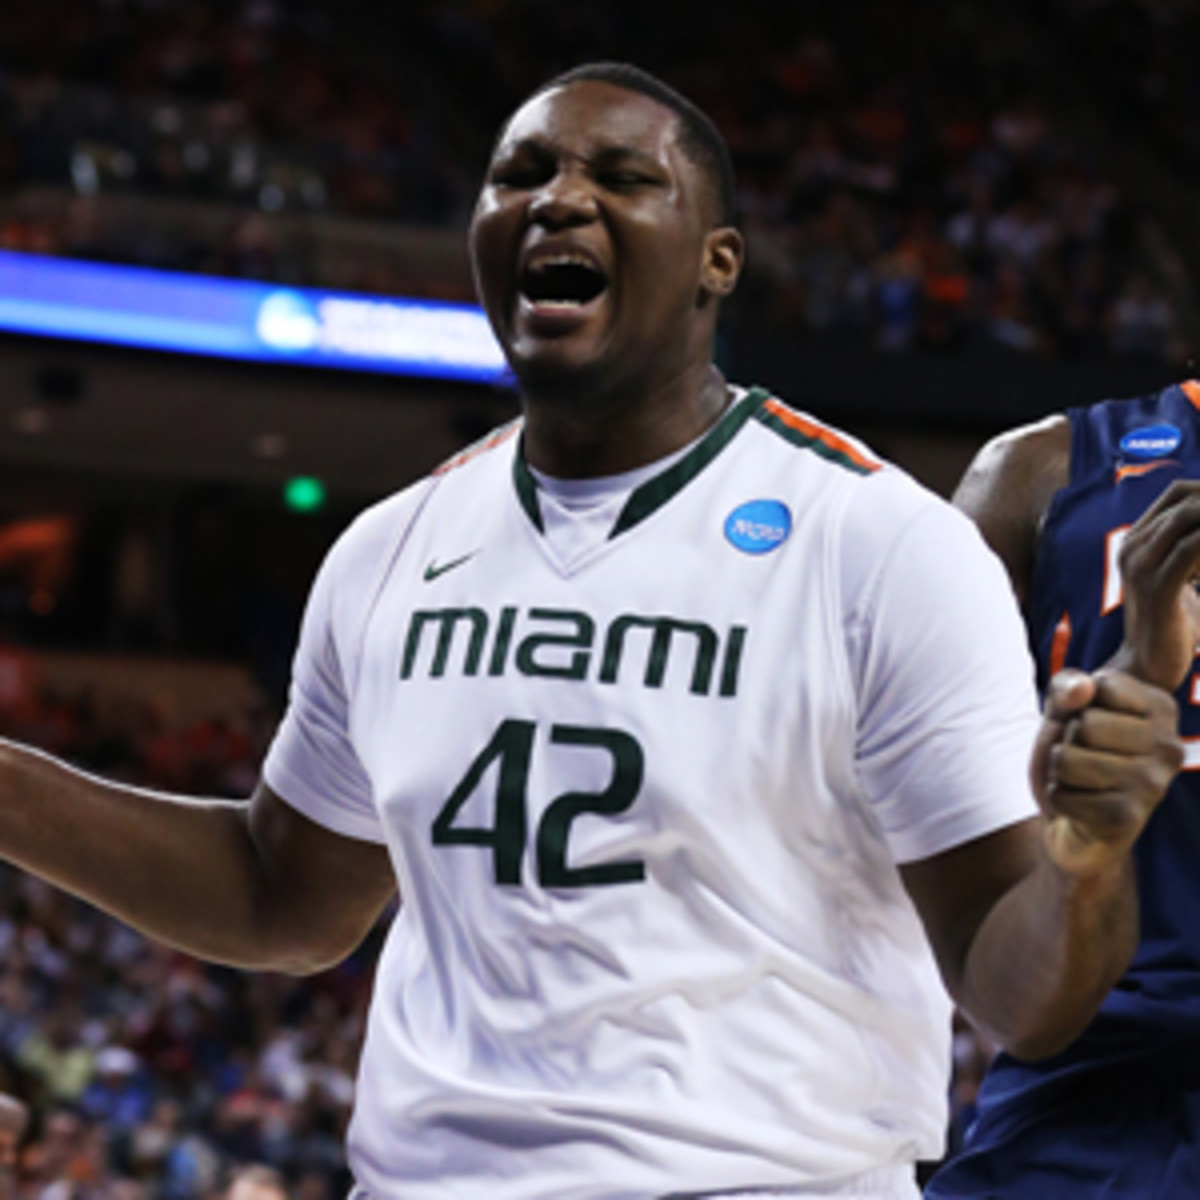 The Miami Hurricanes will be without center Reggie Johnson in the Sweet Sixteen.(Stephen Dunn/Getty Images)